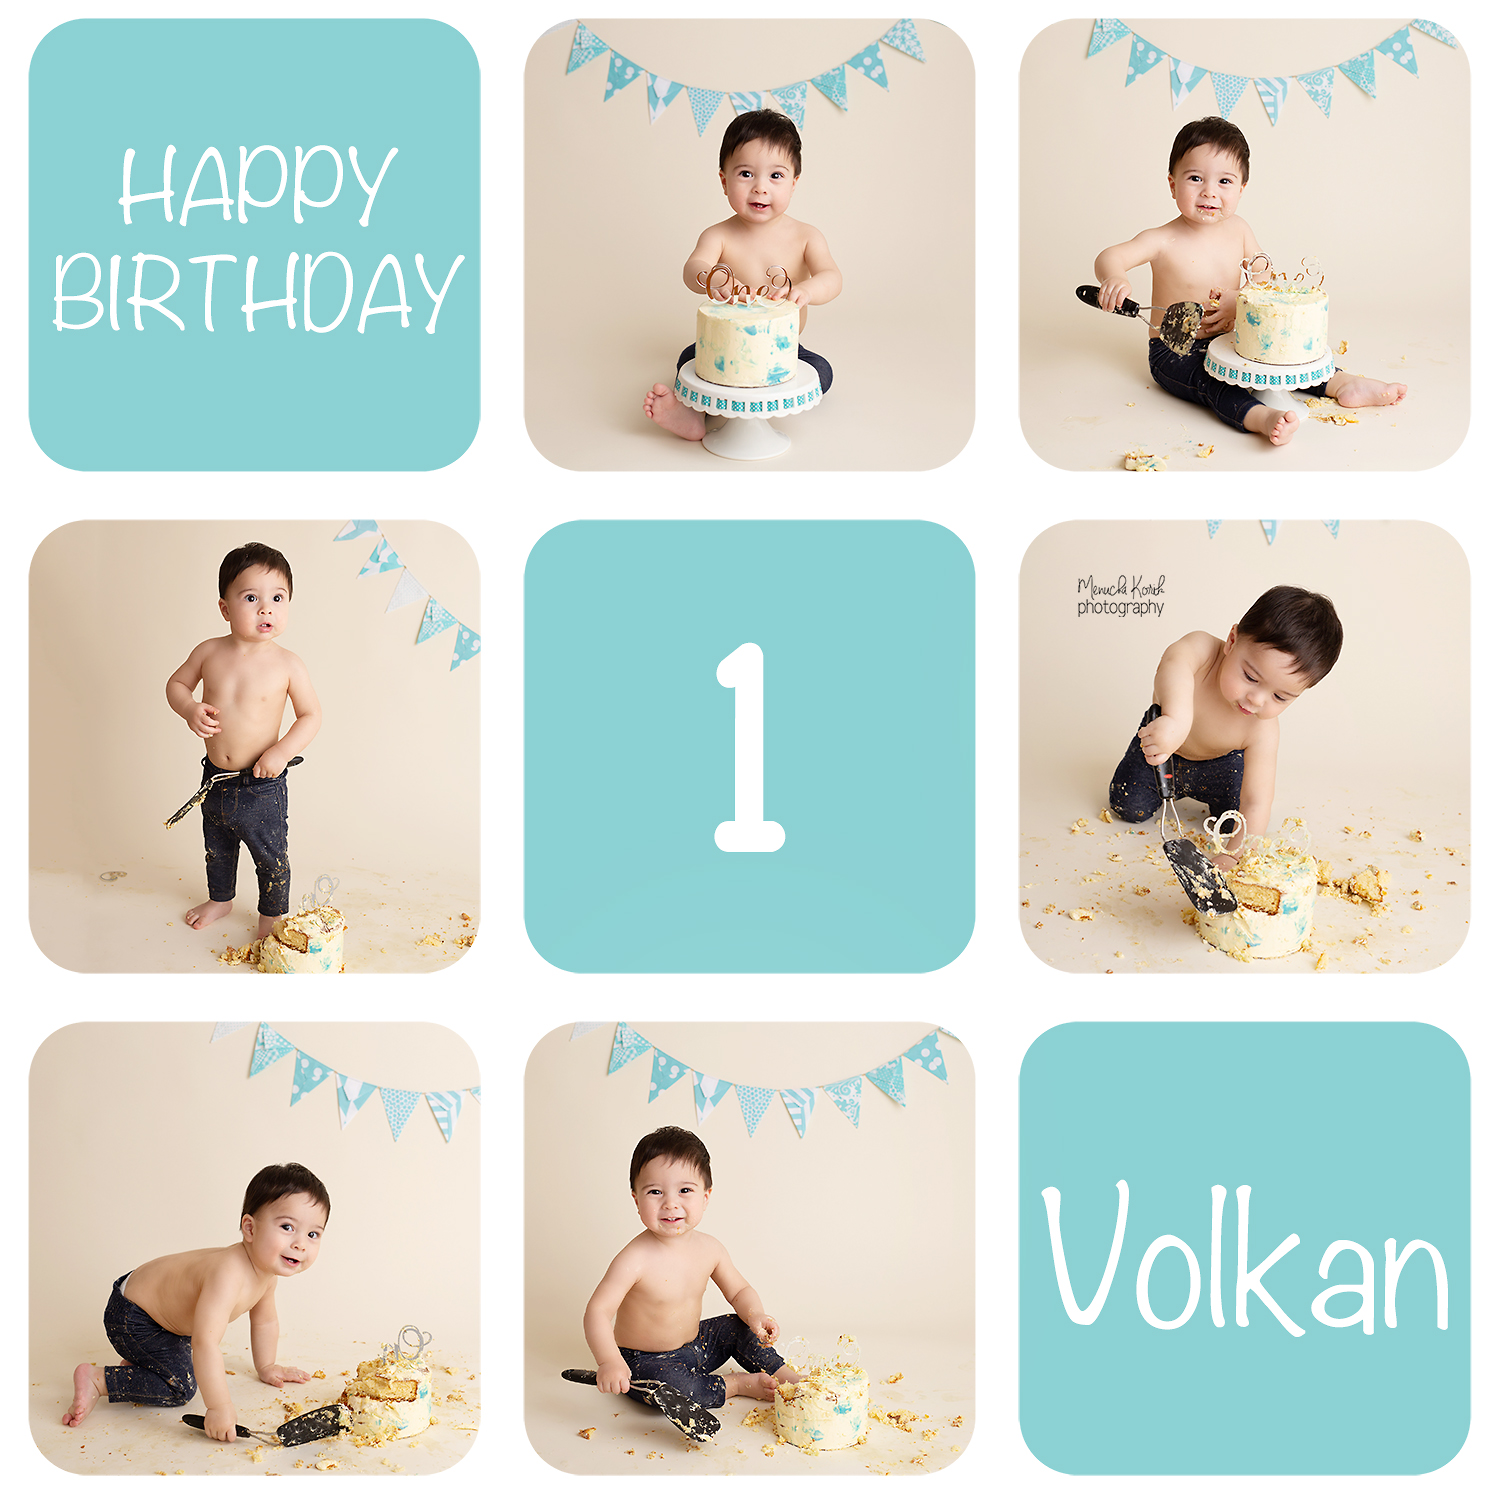 Volkan Birthday web.jpg